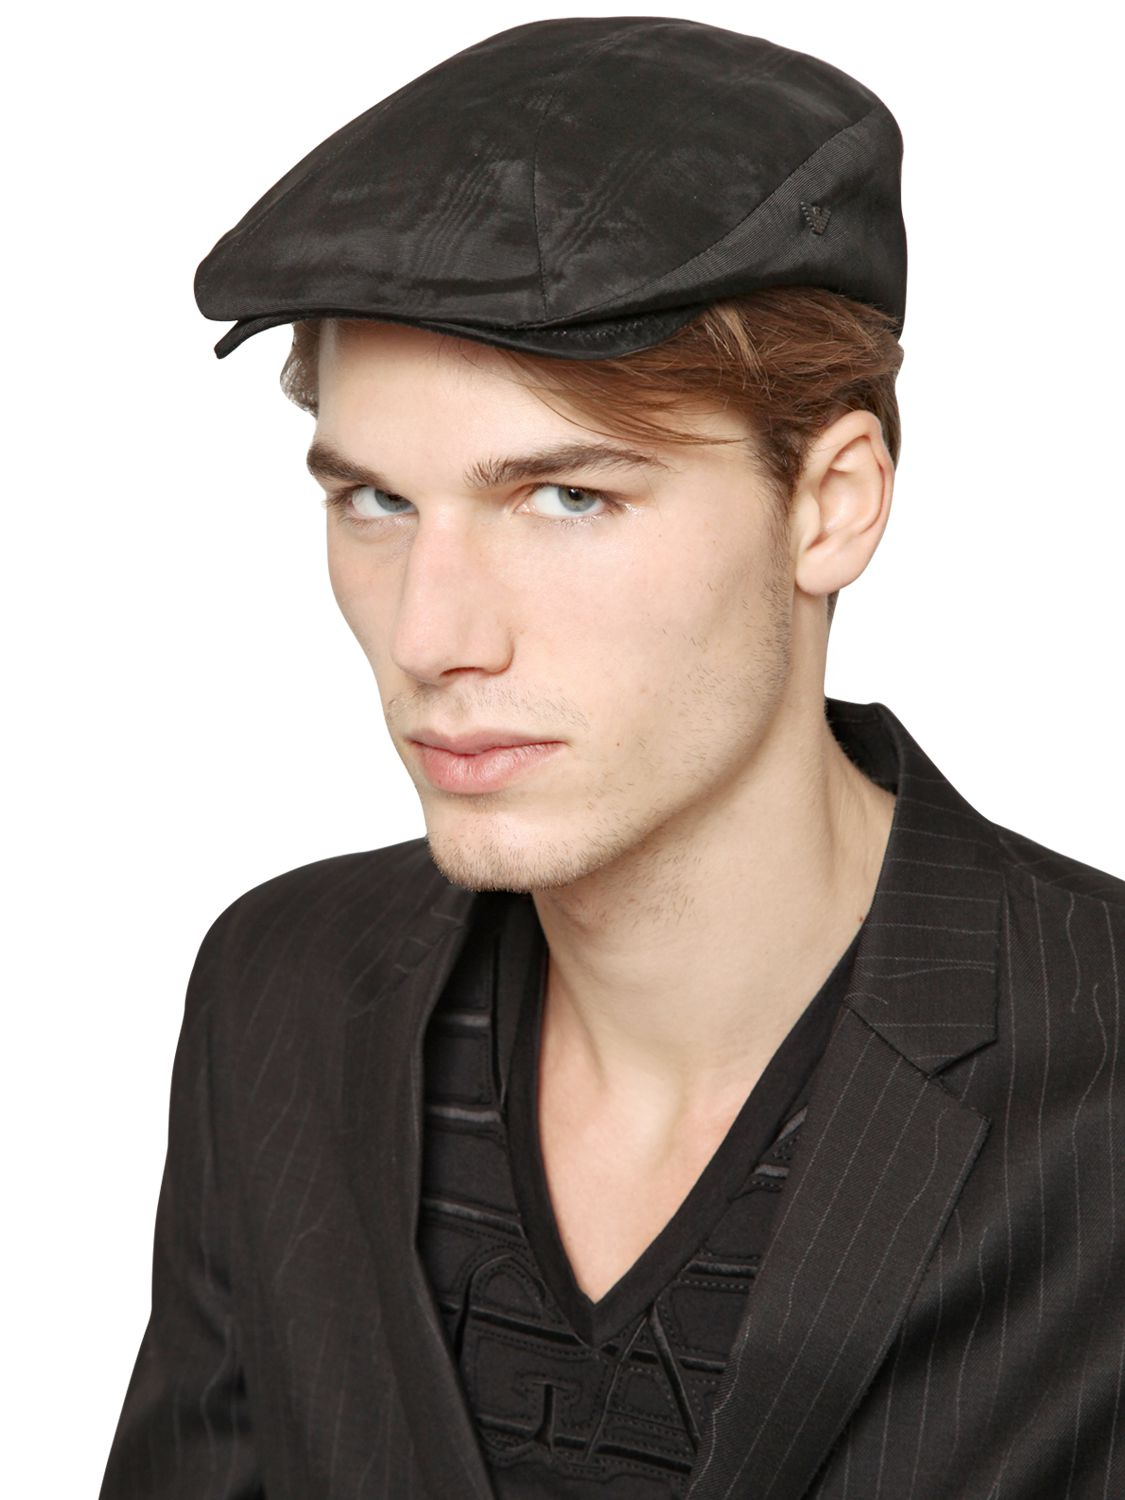 95f9d0de185 Lyst - Emporio Armani Viscose Moire  Flat Cap in Black for Men